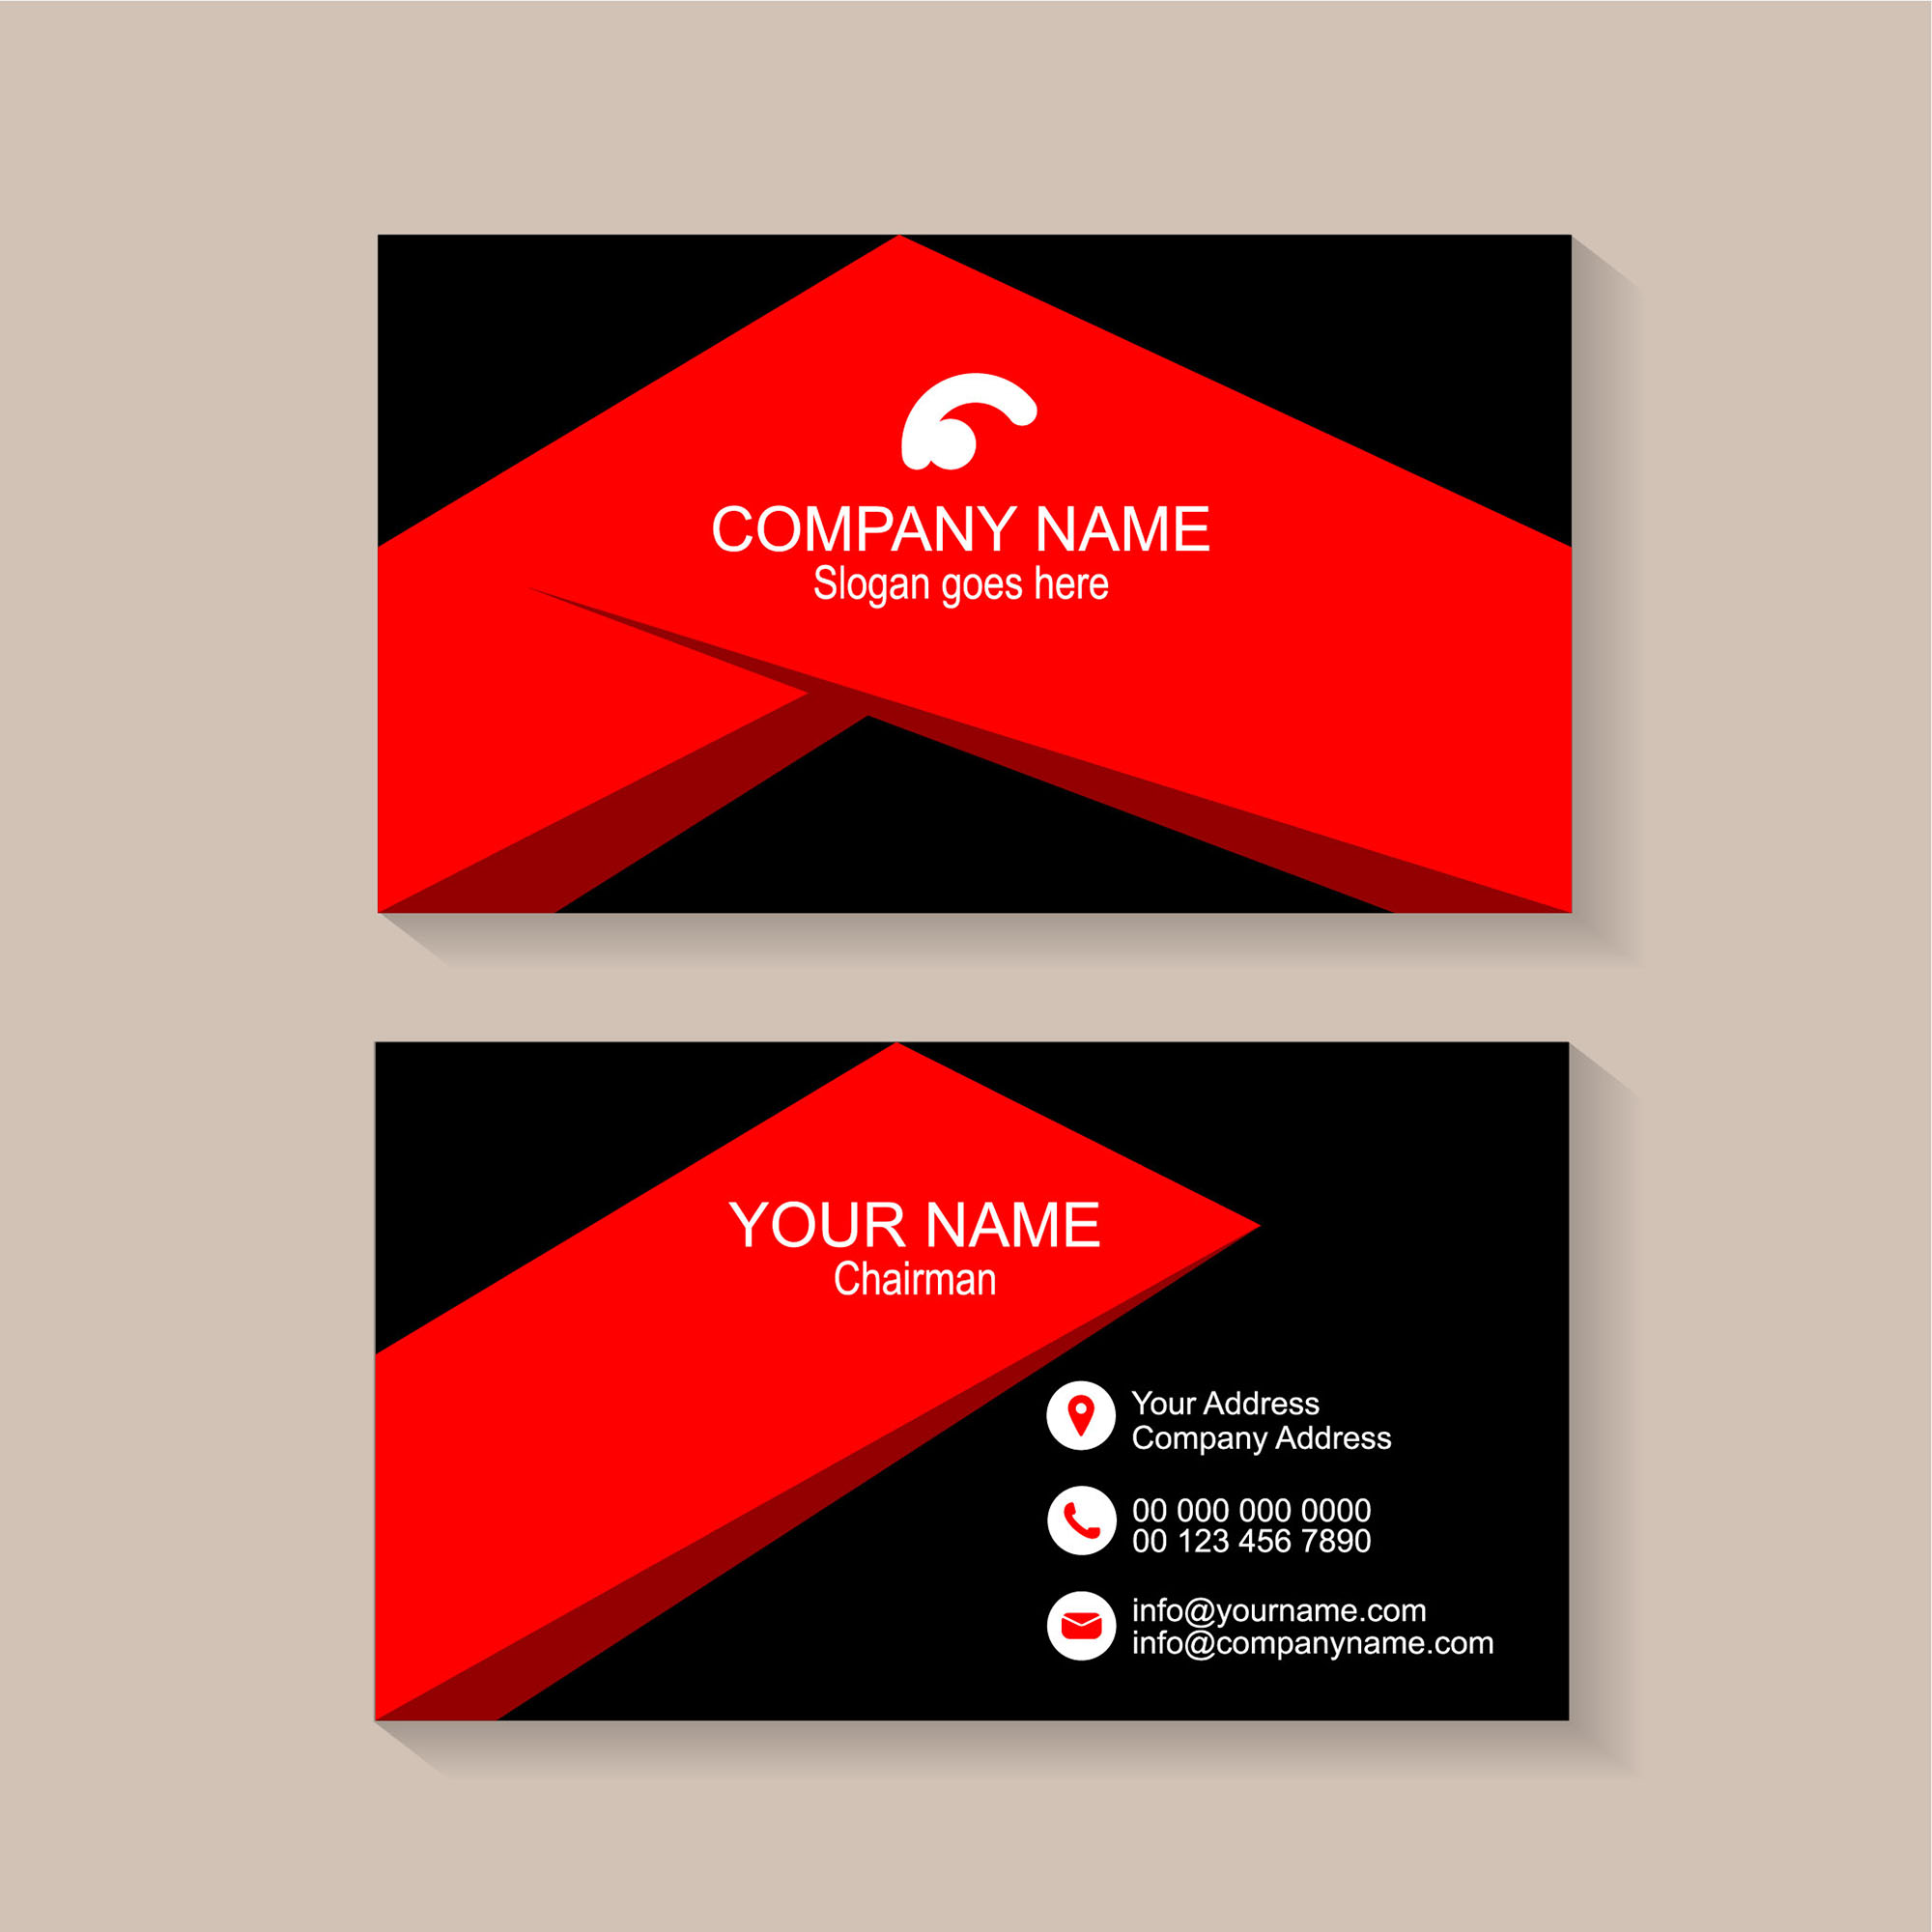 Business Card Template Design Free Download Wisxicom